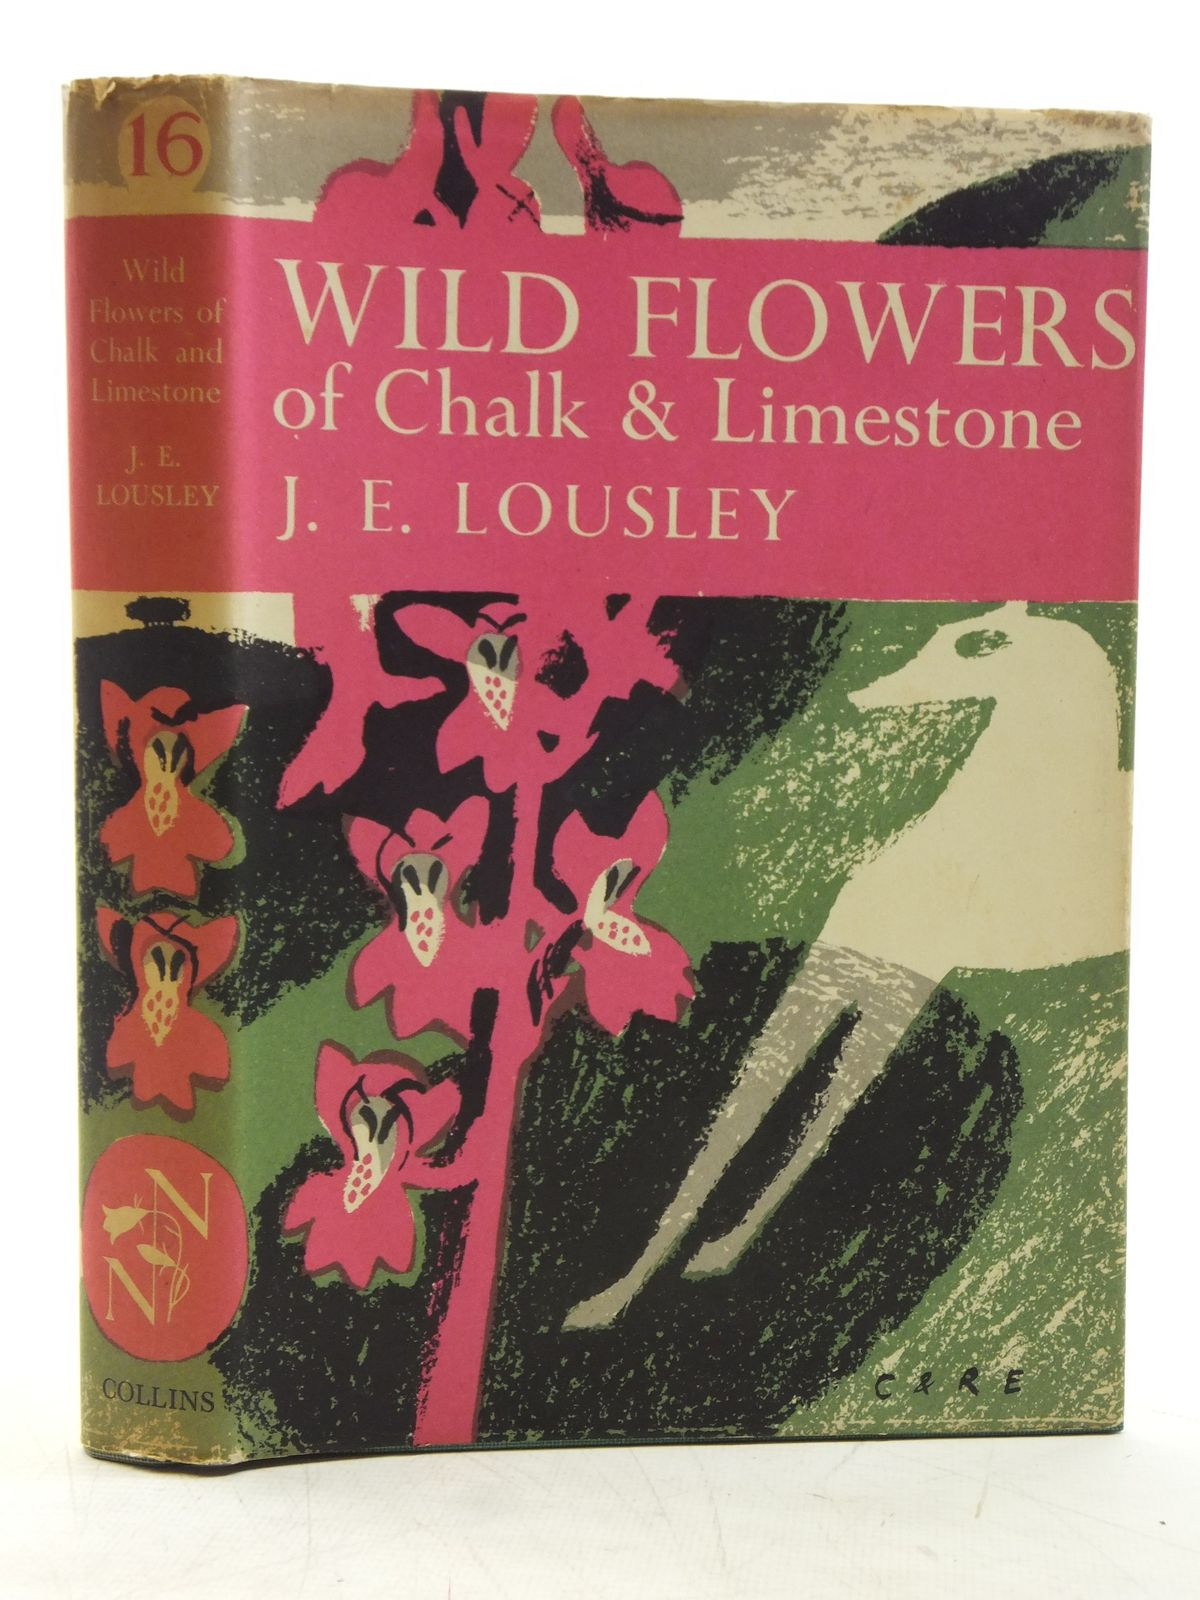 Photo of WILD FLOWERS OF CHALK & LIMESTONE (NN 16) written by Lousley, J.E. published by Collins (STOCK CODE: 1607746)  for sale by Stella & Rose's Books